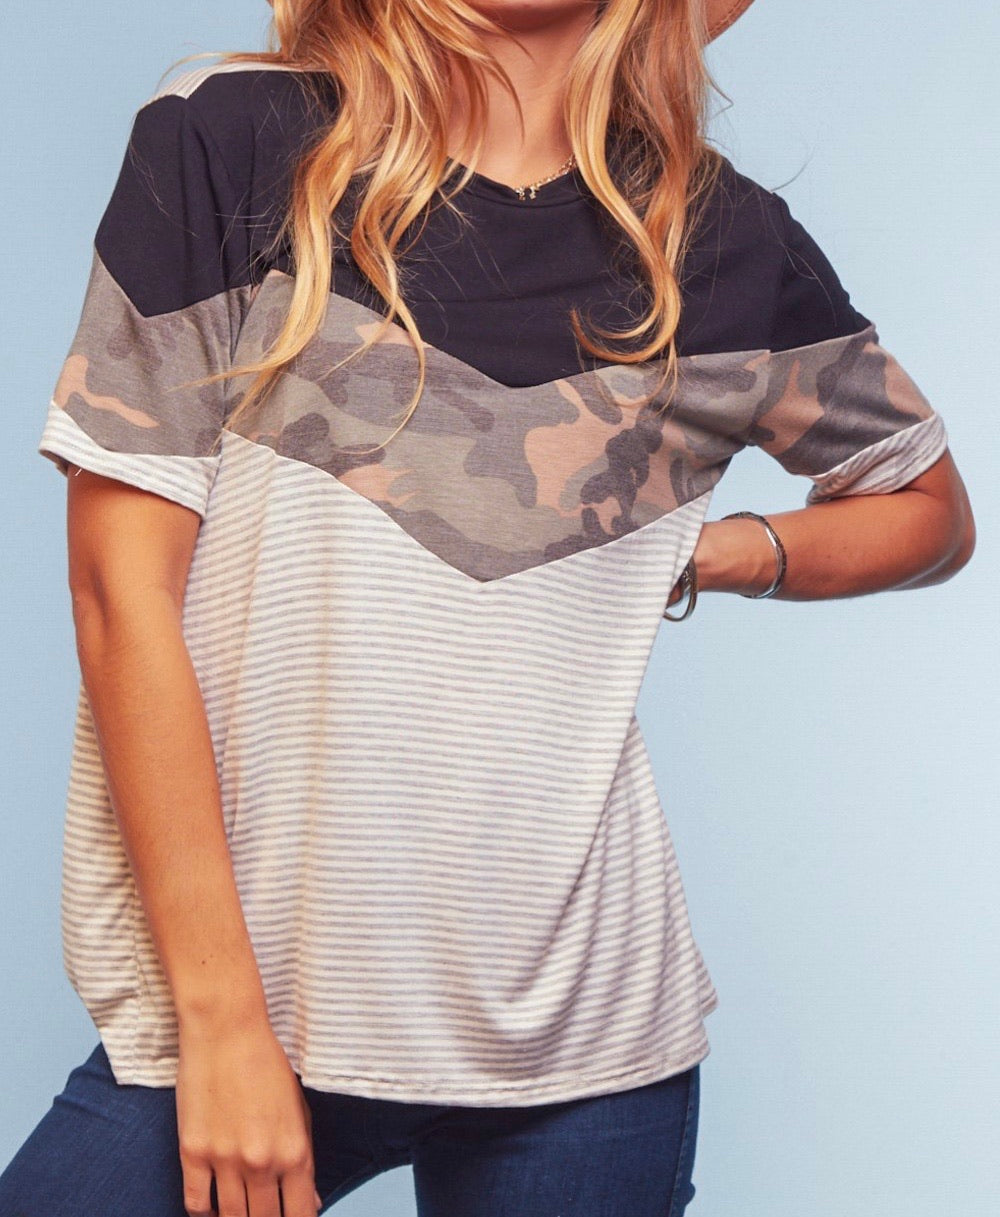 No Big Deal Camo Top {regular and curvy sizes}